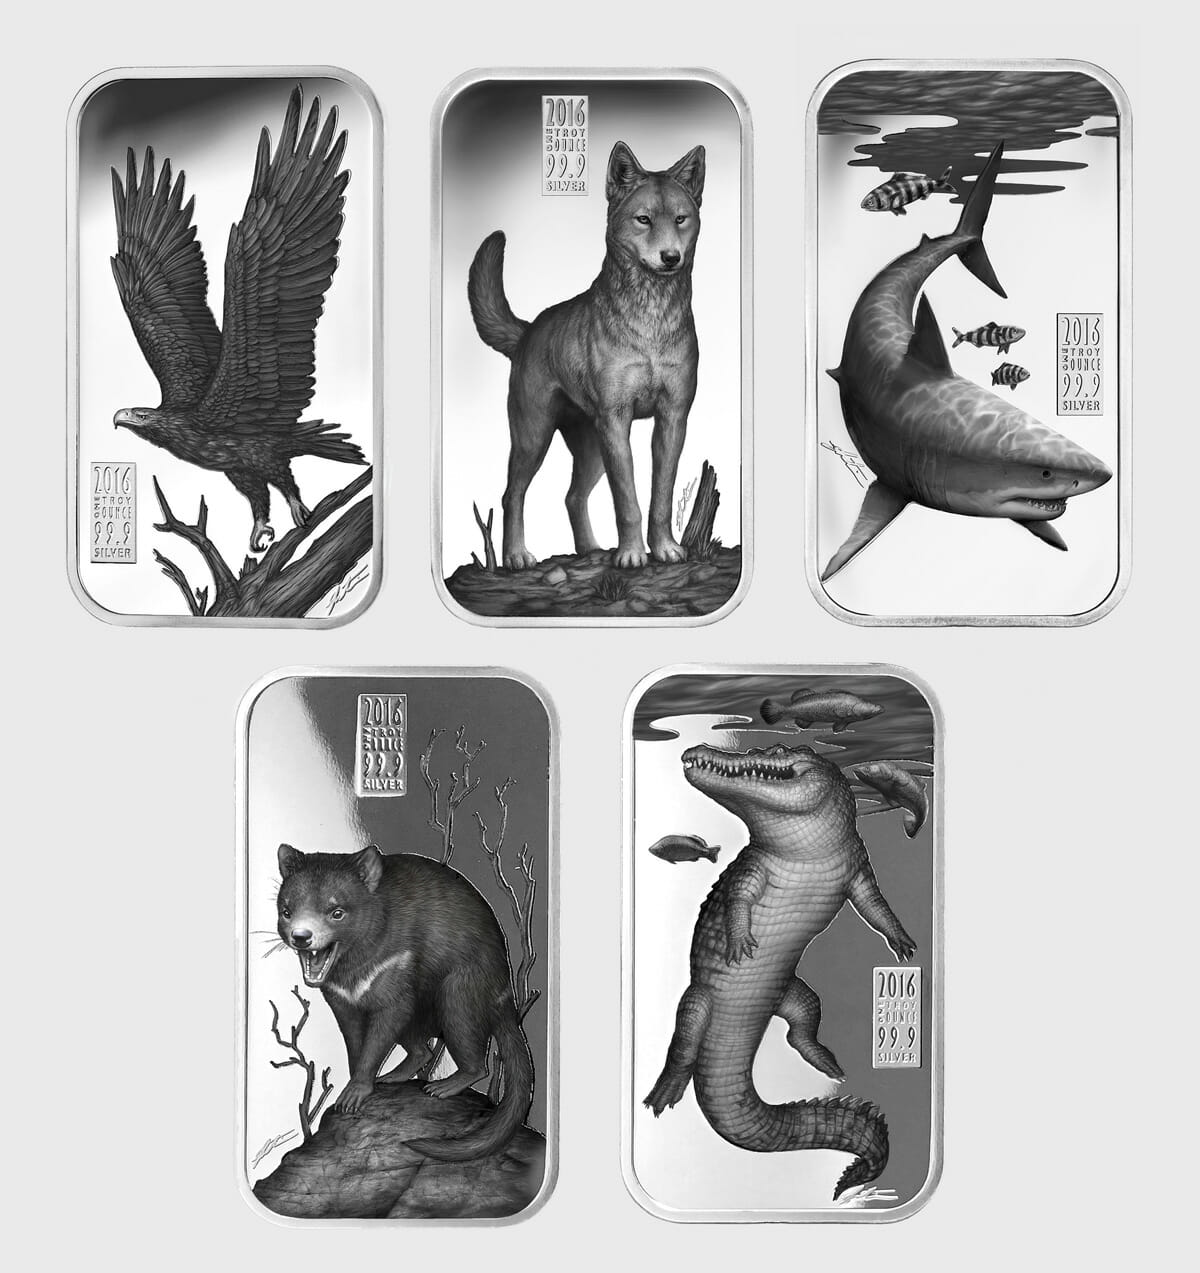 Coin designs for the Australian Apex Predators coin series; wedge-tailed eagle, dingo, great white shark, tasmanian devil and crocodile